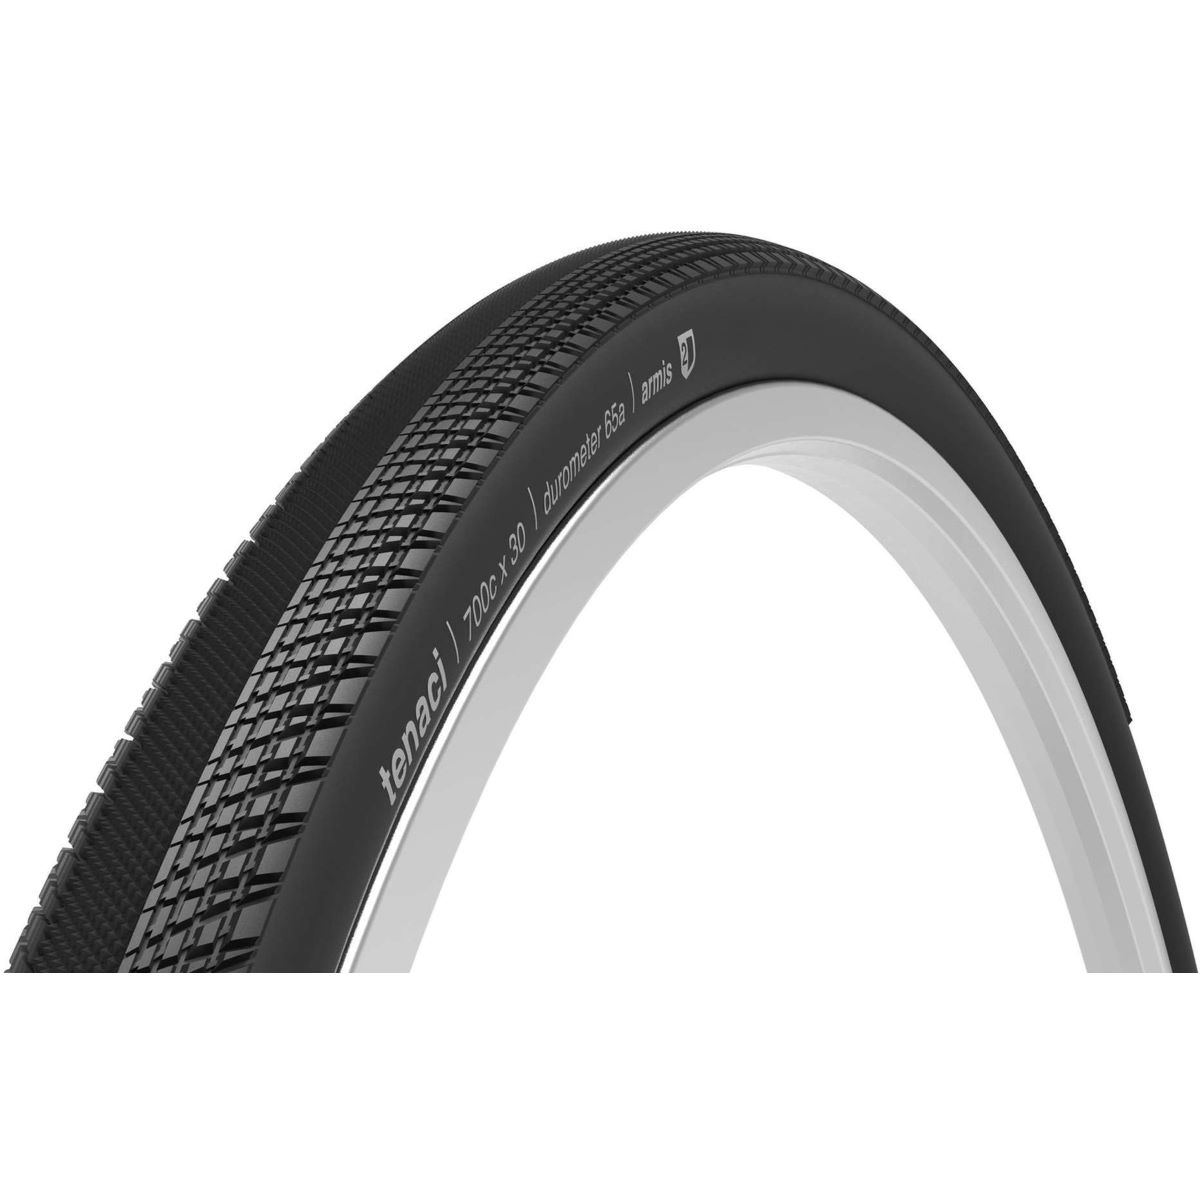 Ere Research Tenaci Clincher 120TPI Folding MTB Tyre - Cubiertas